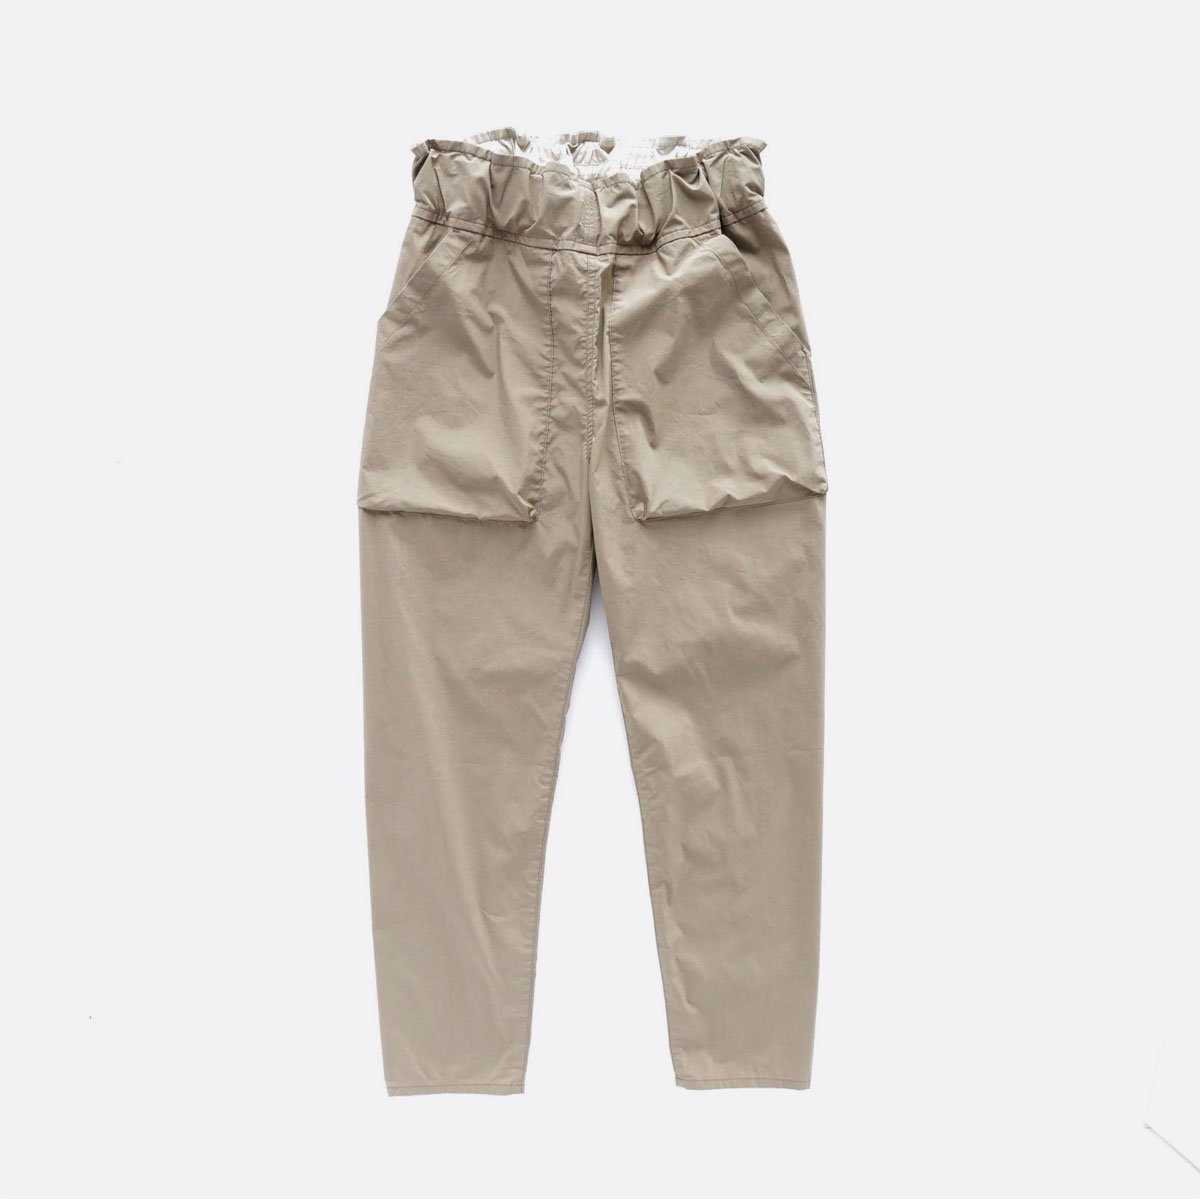 FIRMUM COTTON & POLYESTER STRETCH TYPEWRITER EASY TAPERED PANTS (LIGHT KHAKI)